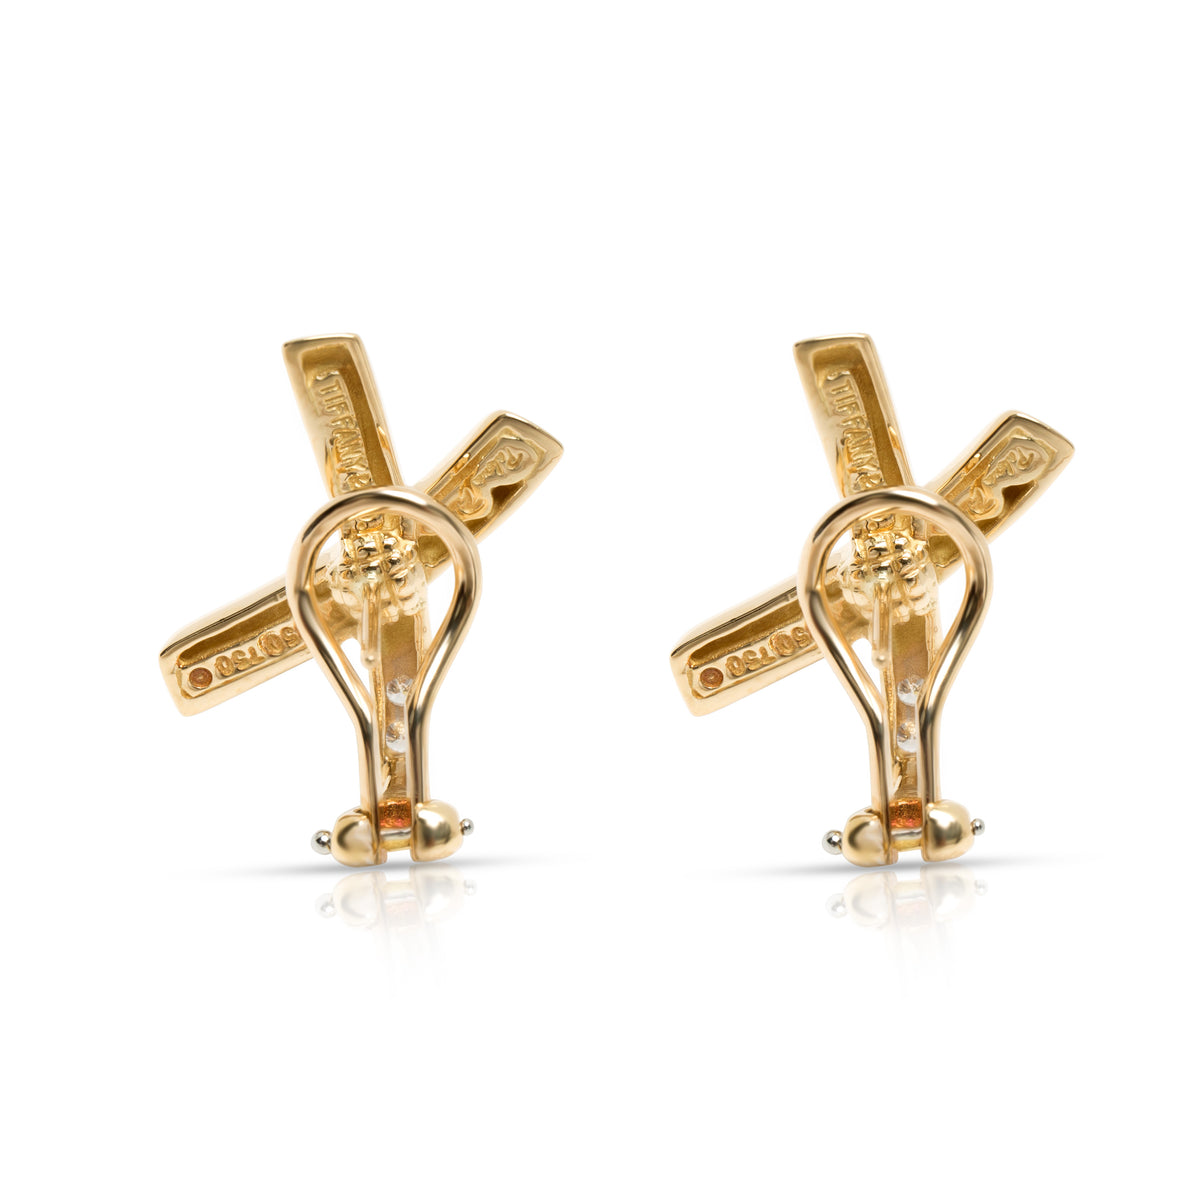 Tiffany & Co. Paloma Picasso X Diamond Earrings in 18K Gold/Platinum 0.16 ctw